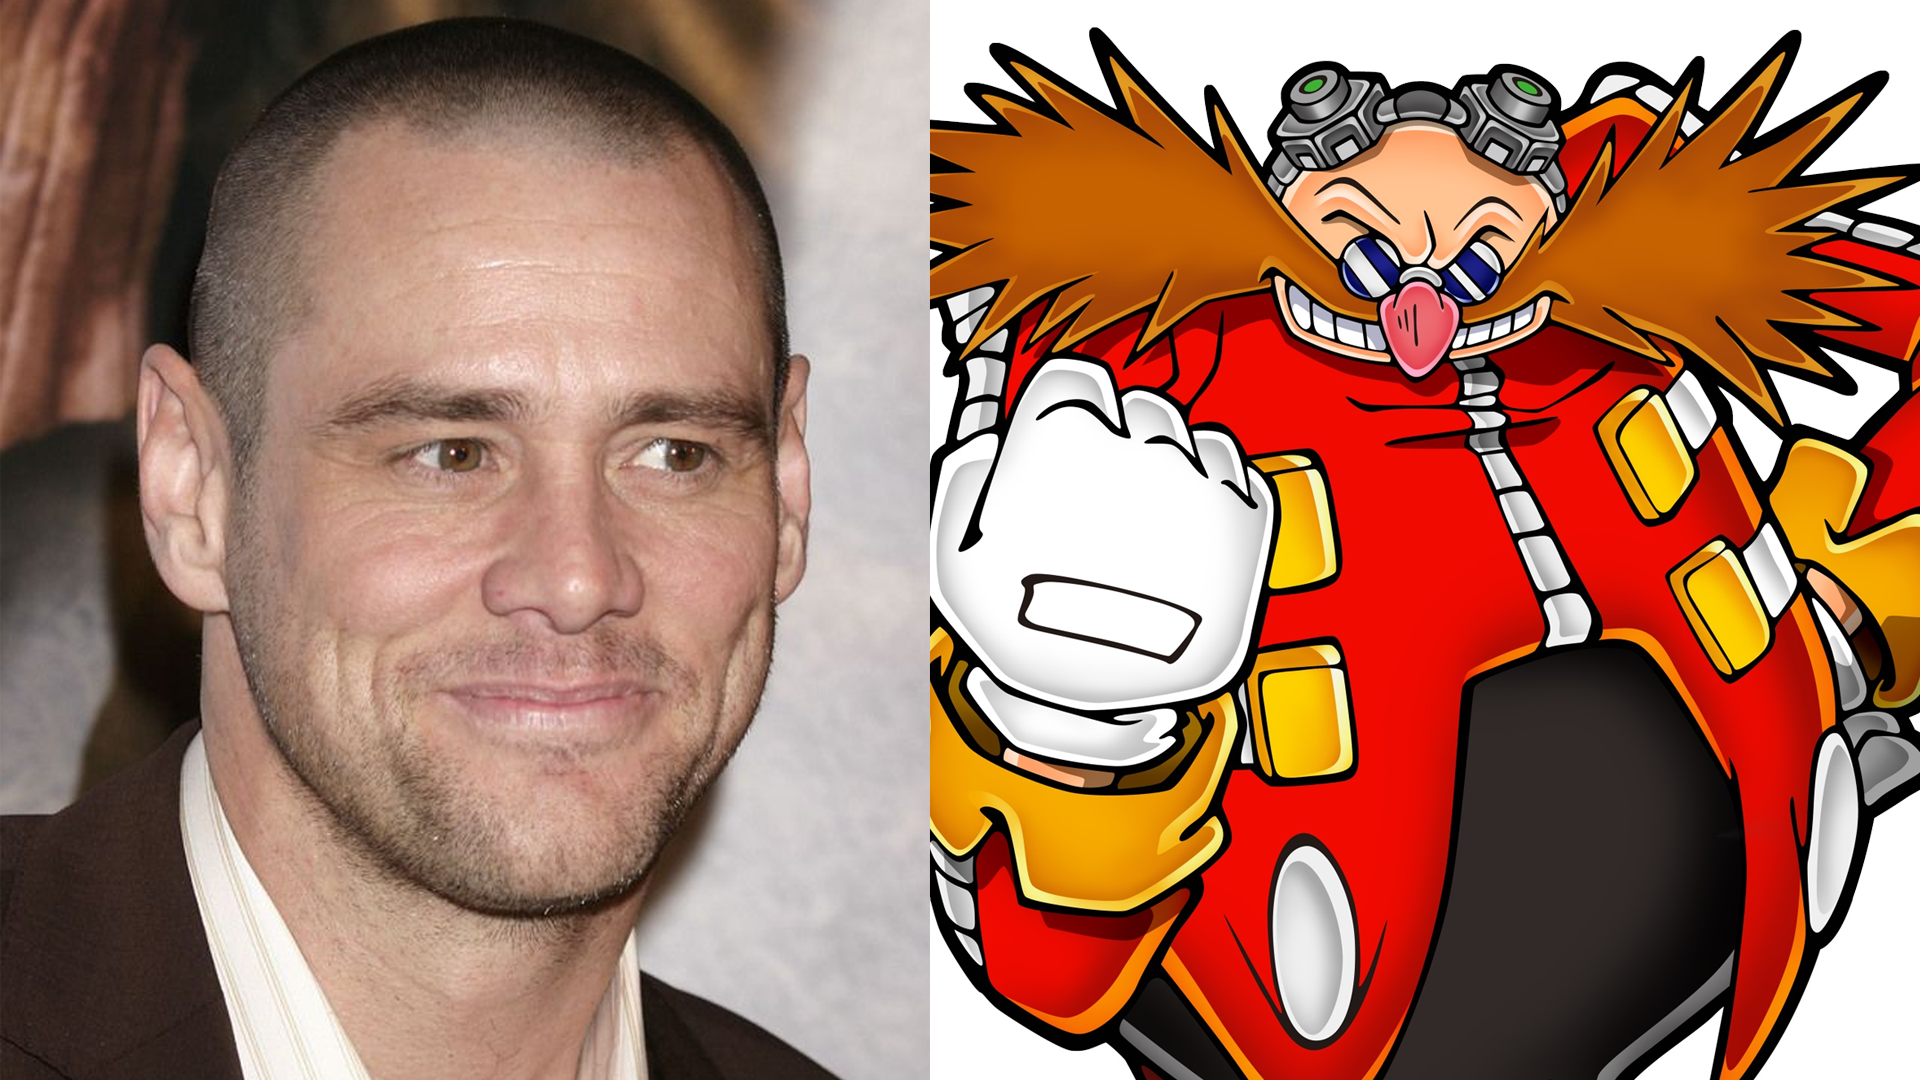 Jim Carrey Will Play Villain Robotnik In The Upcoming Sonic The Hedgehog Movie Segabits 1 Source For Sega News